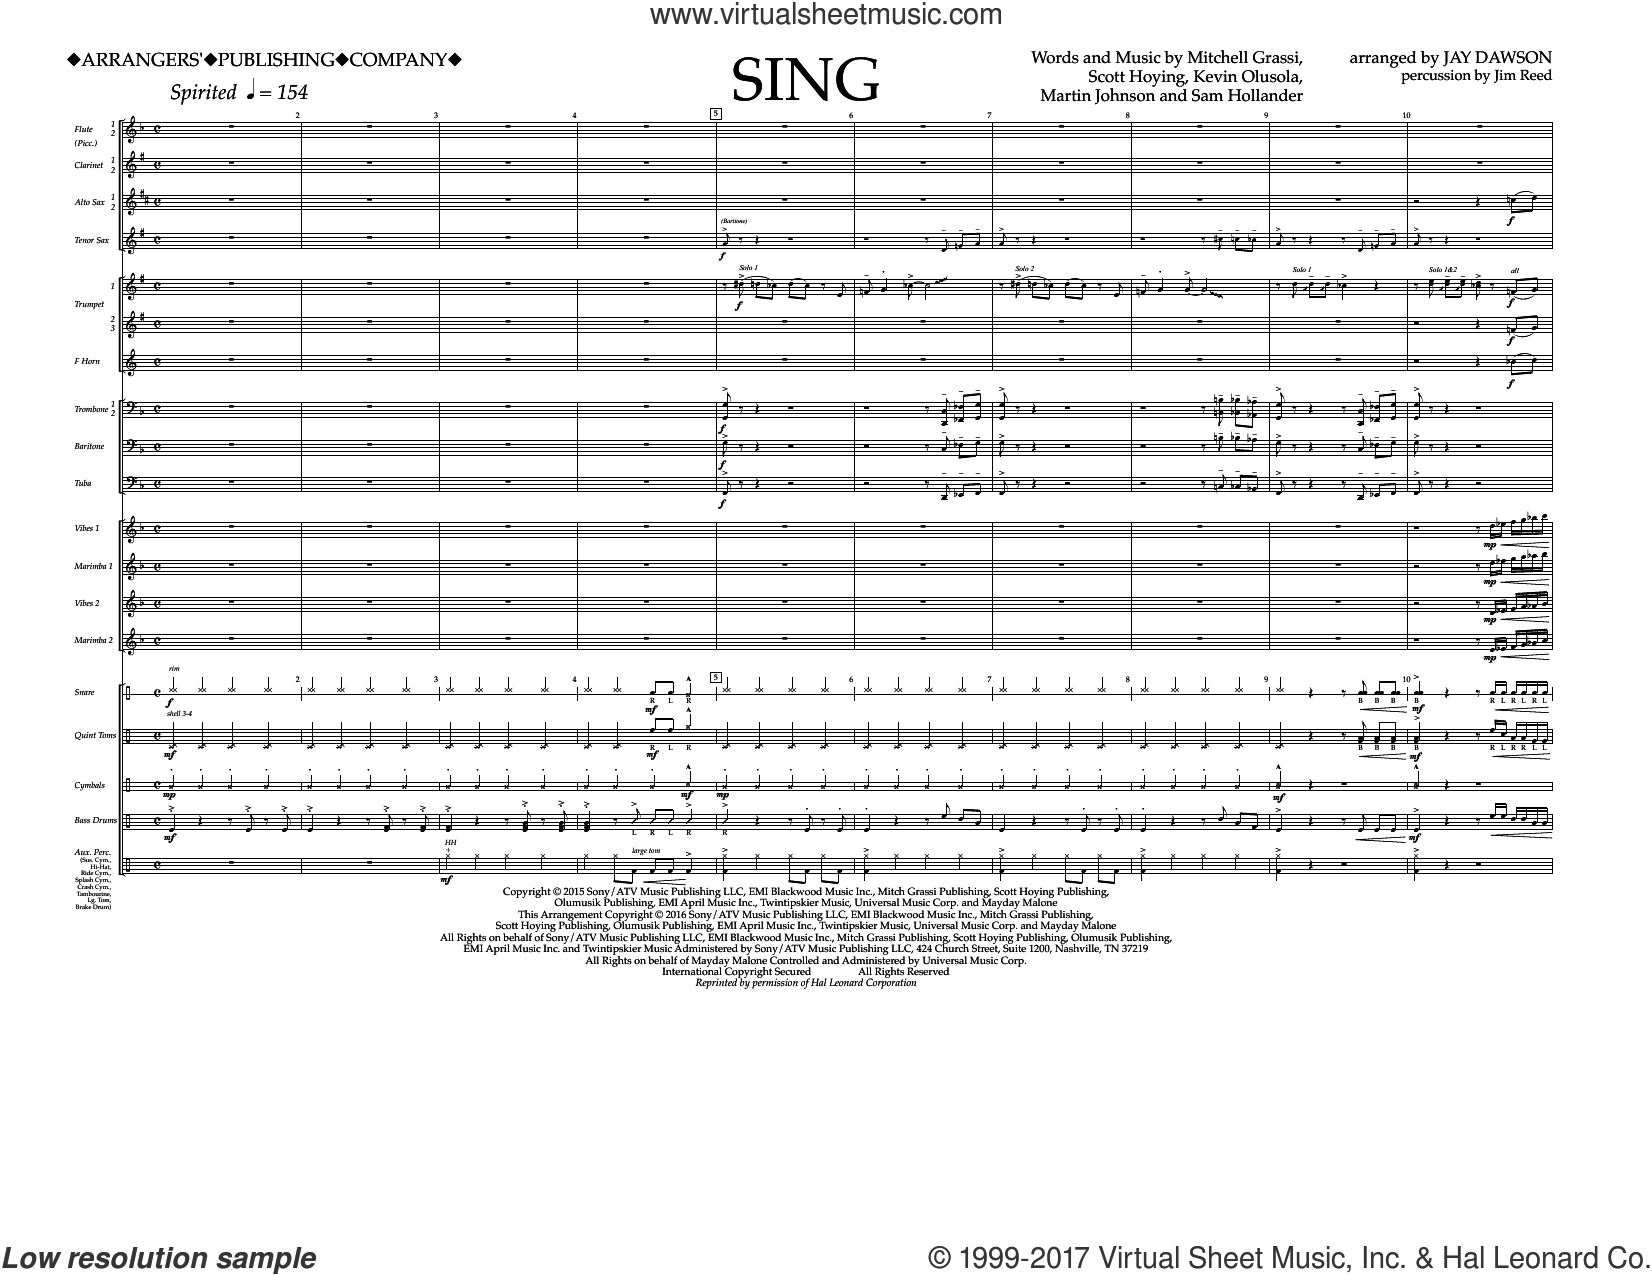 Sing (COMPLETE) sheet music for marching band by Pentatonix, Jay Dawson, Kevin Olusola, Martin Johnson, Mitchell Grassi, Sam Hollander and Scott Hoying, intermediate. Score Image Preview.